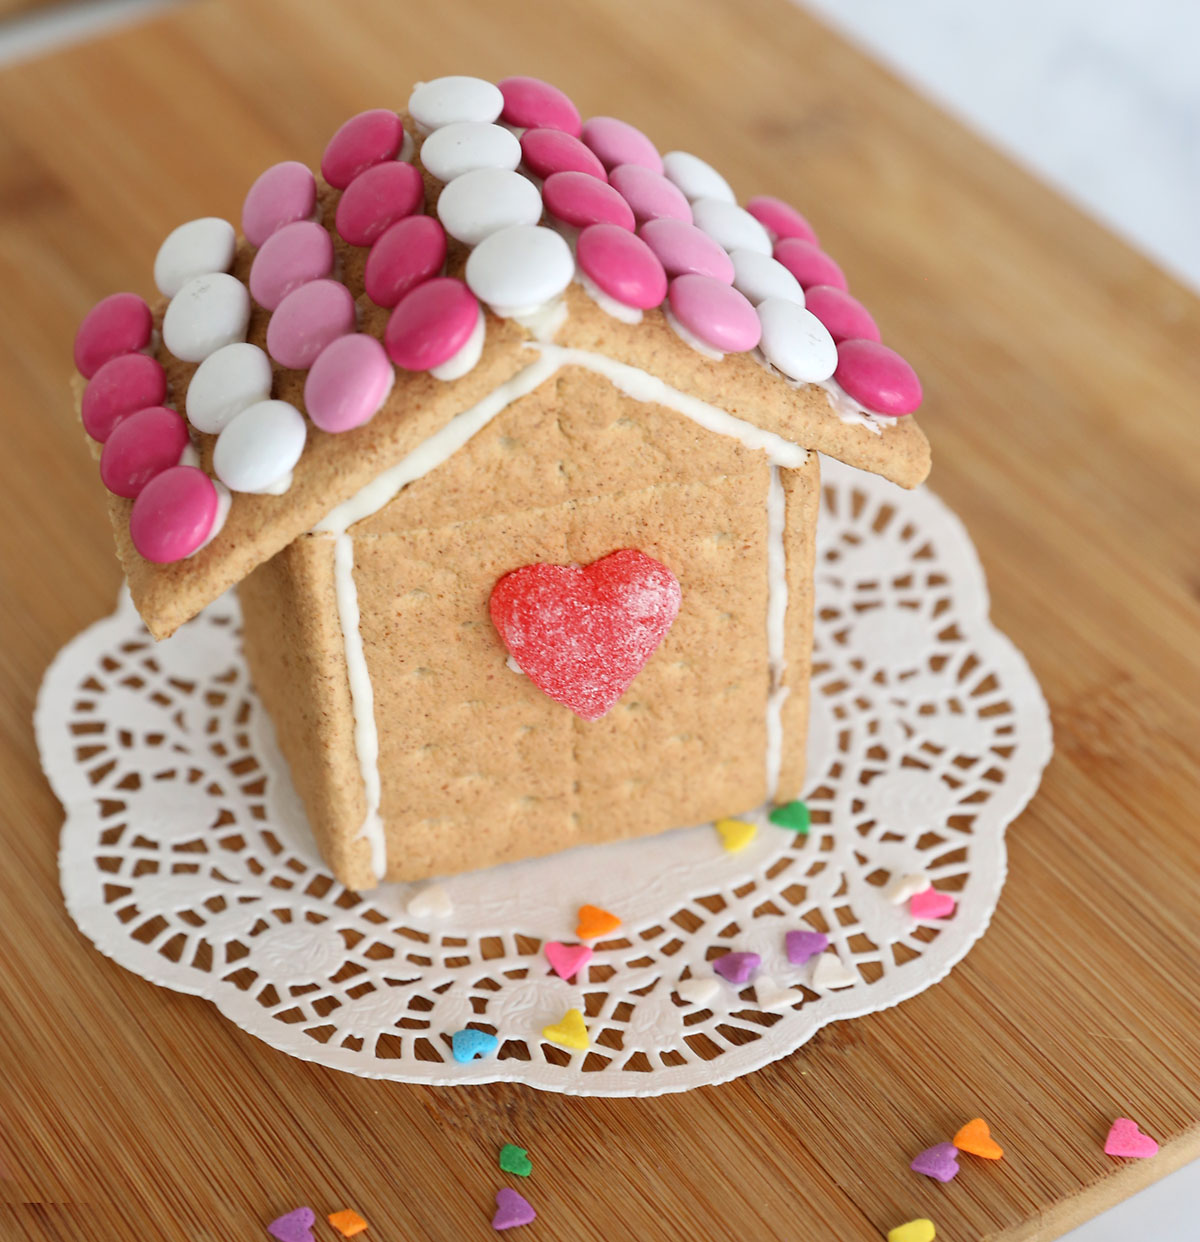 Valentine's house made from graham crackers decorated with M&Ms and candy hearts